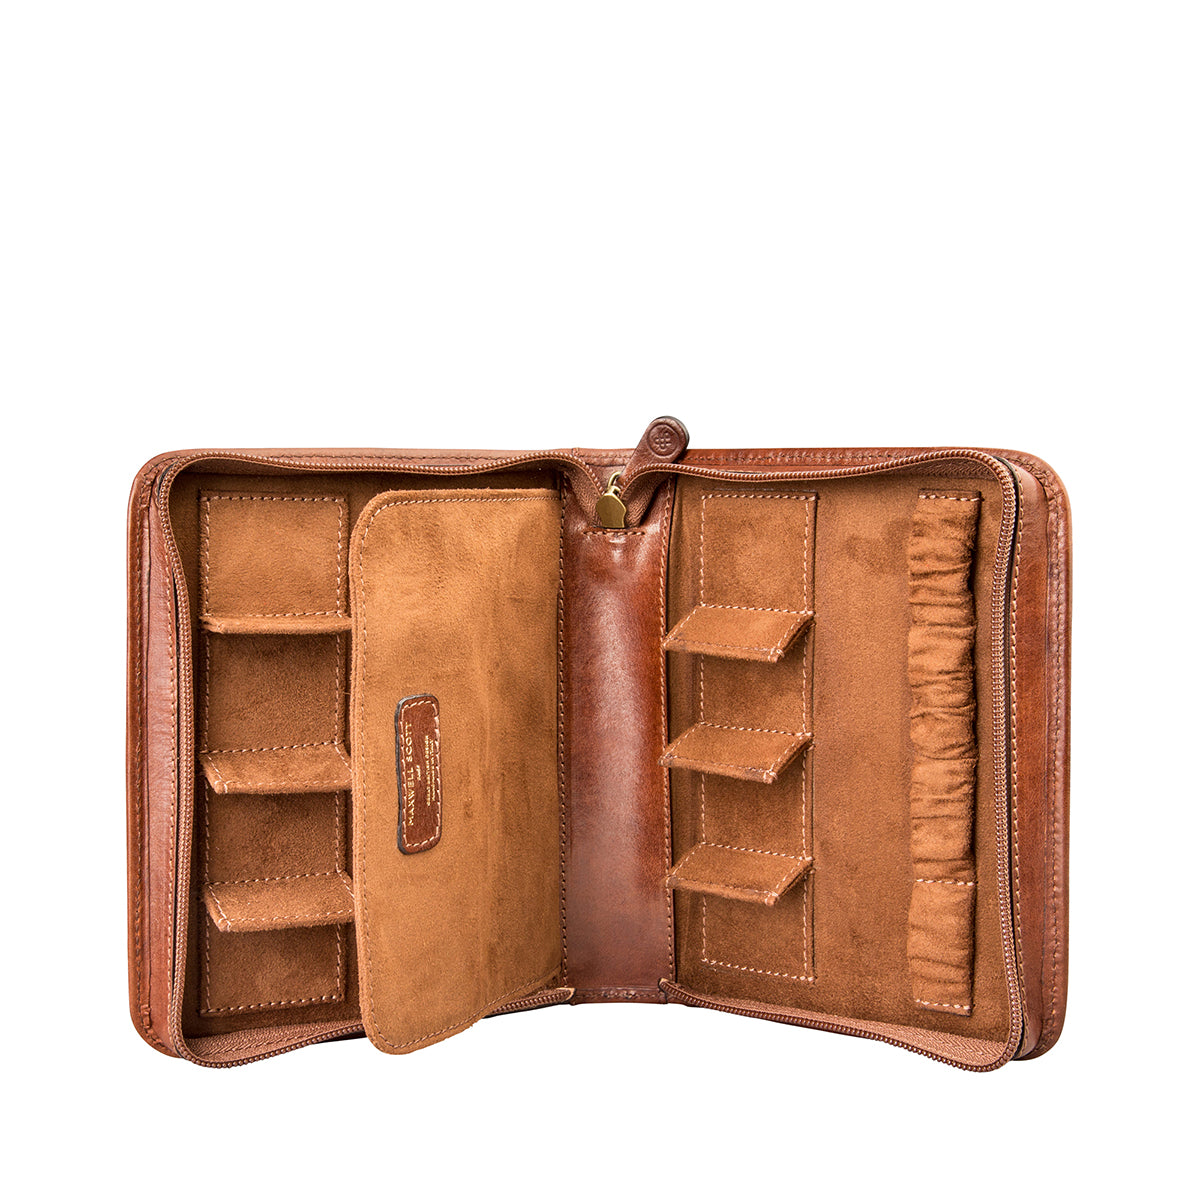 Image 1 of the 'Atella' Chestnut Veg-Tanned Leather Watch Presentation Case